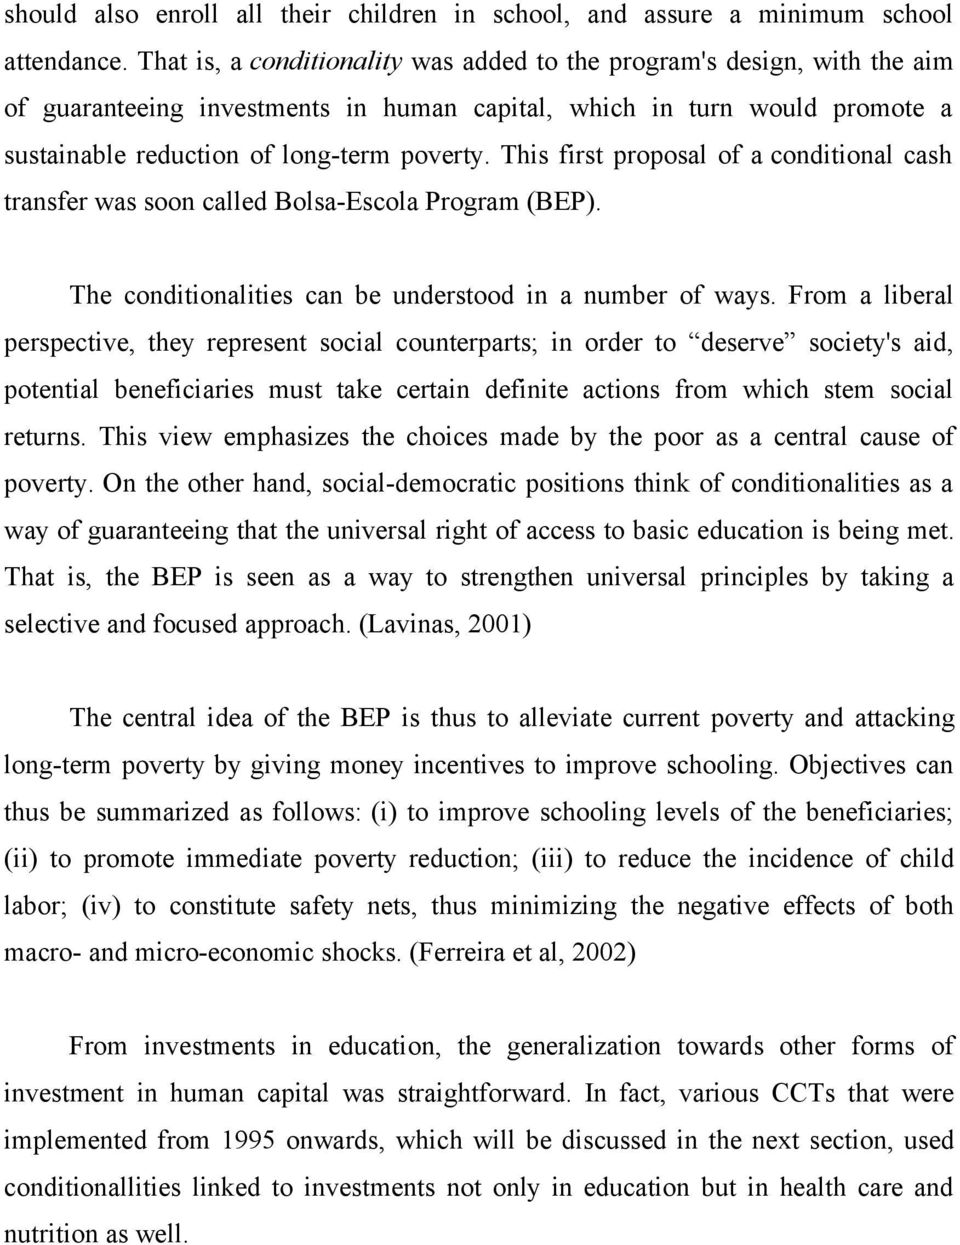 This first proposal of a conditional cash transfer was soon called Bolsa-Escola Program (BEP). The conditionalities can be understood in a number of ways.